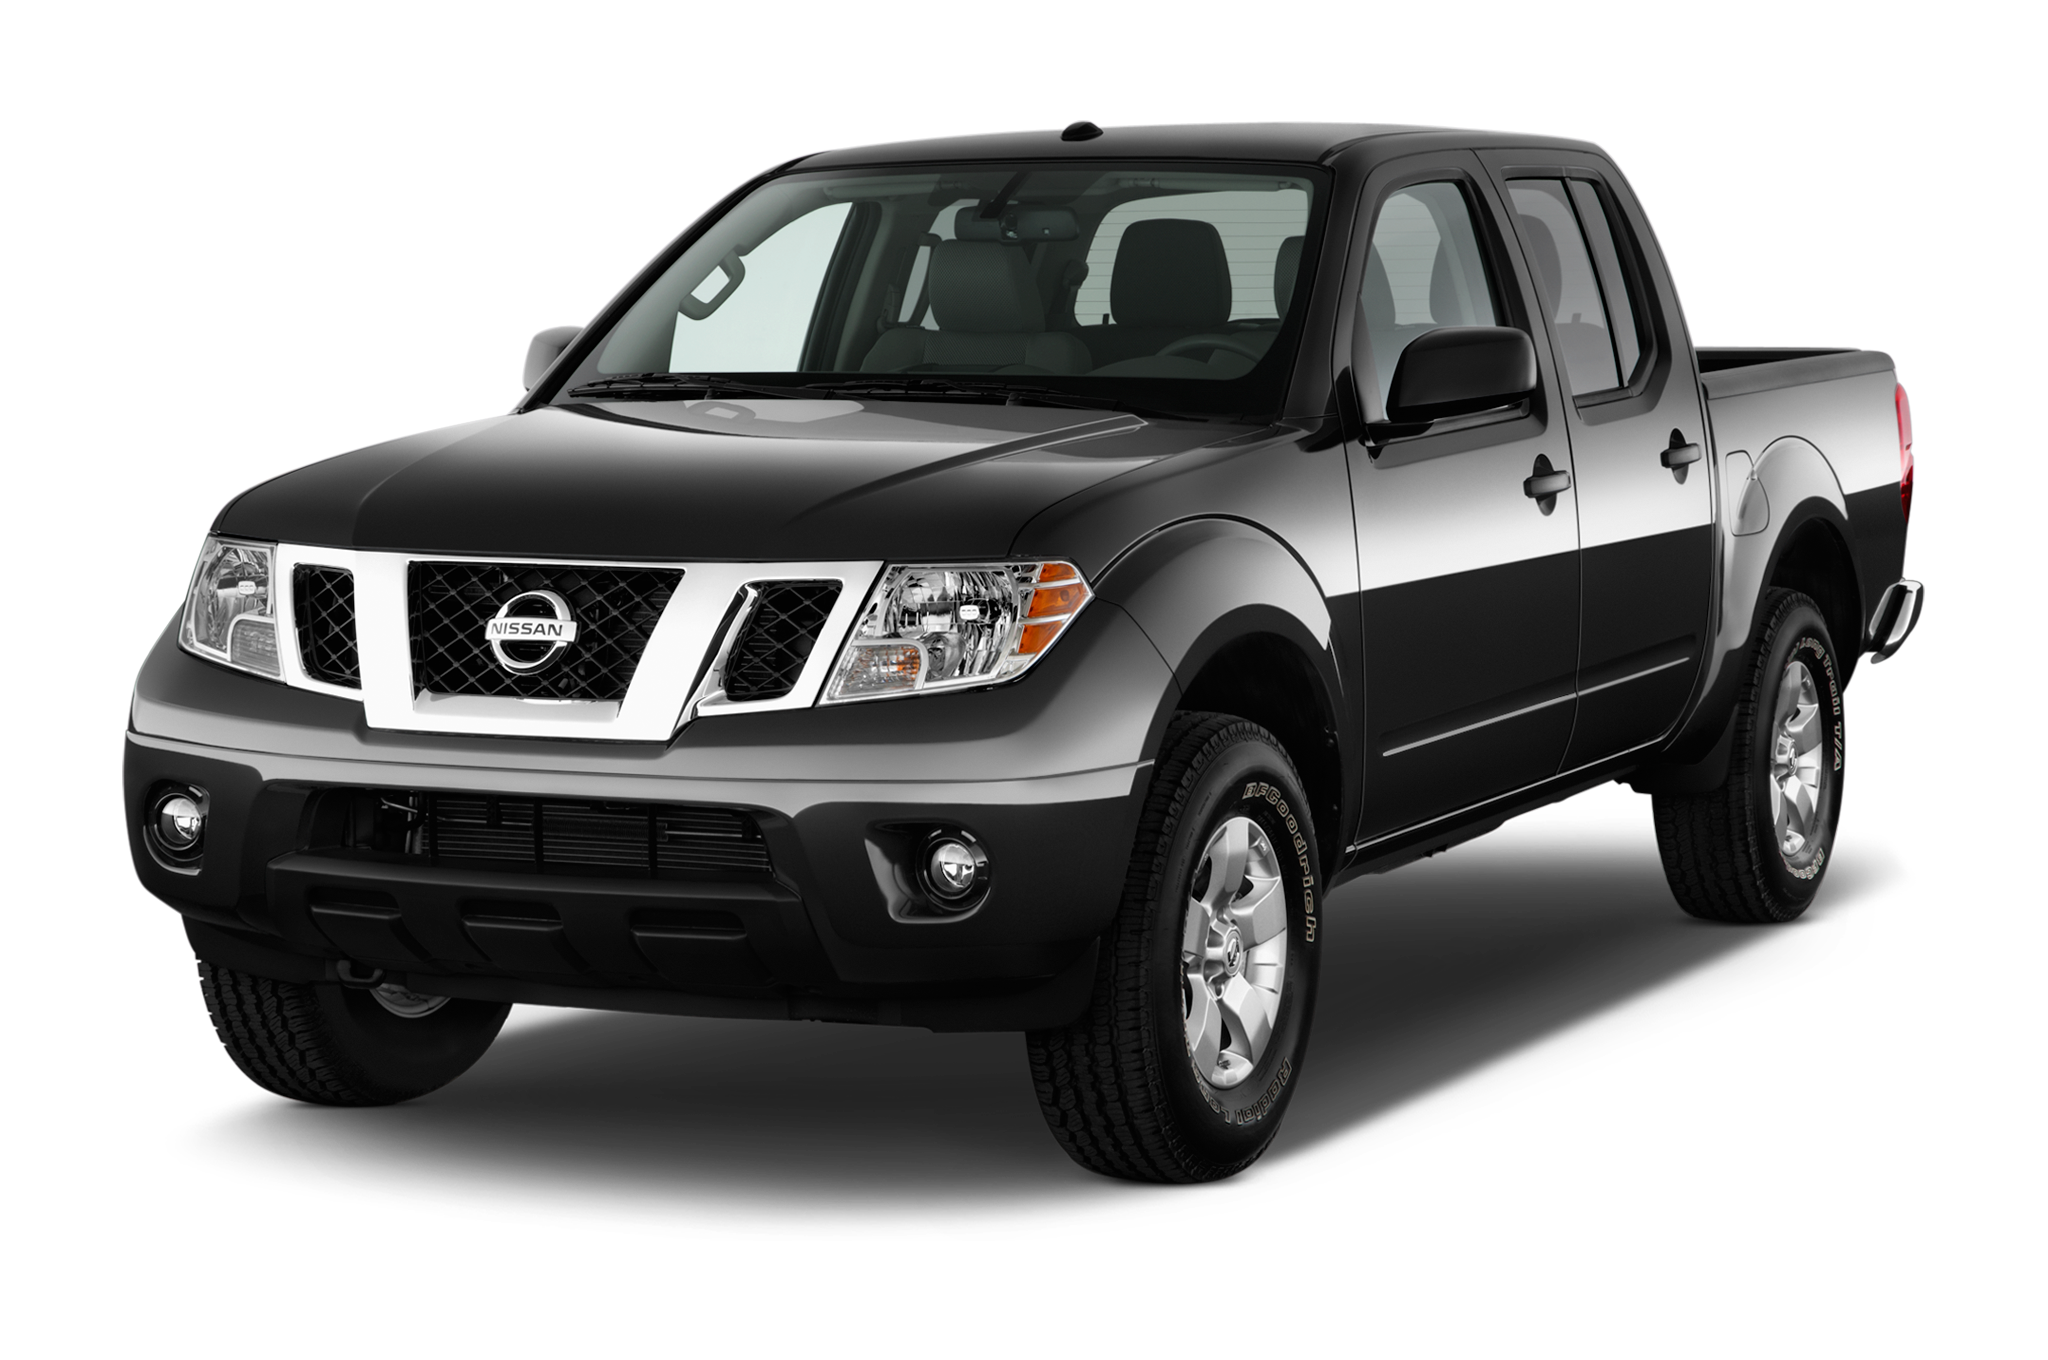 2014 nissan frontier diesel prototype around the block. Black Bedroom Furniture Sets. Home Design Ideas